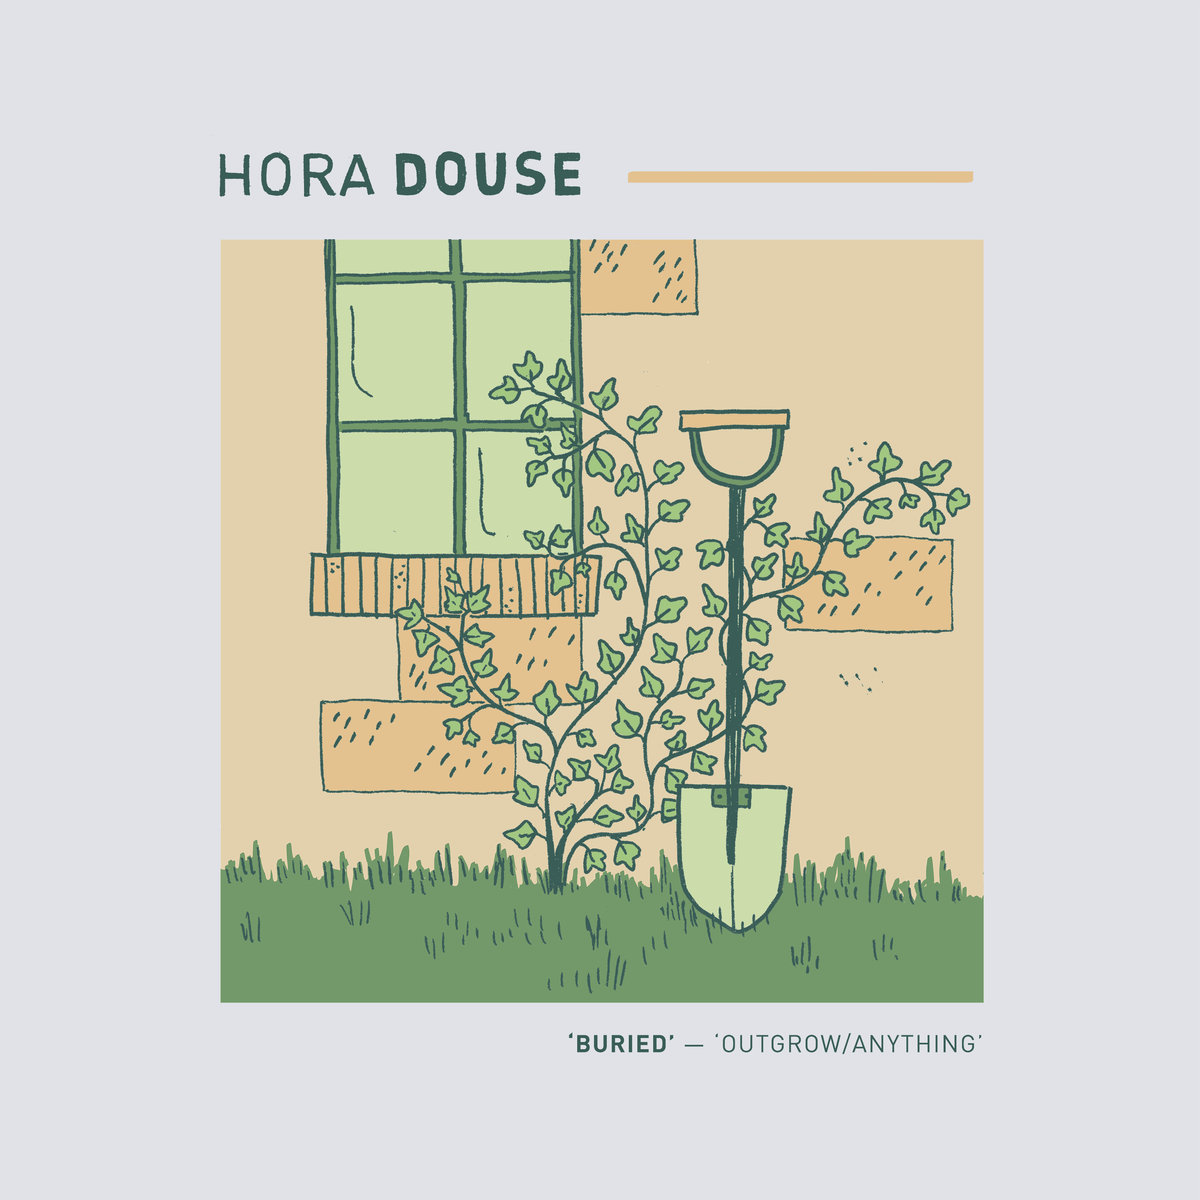 Hora Douse - 'Buried' | 'Outgrow/Anything'